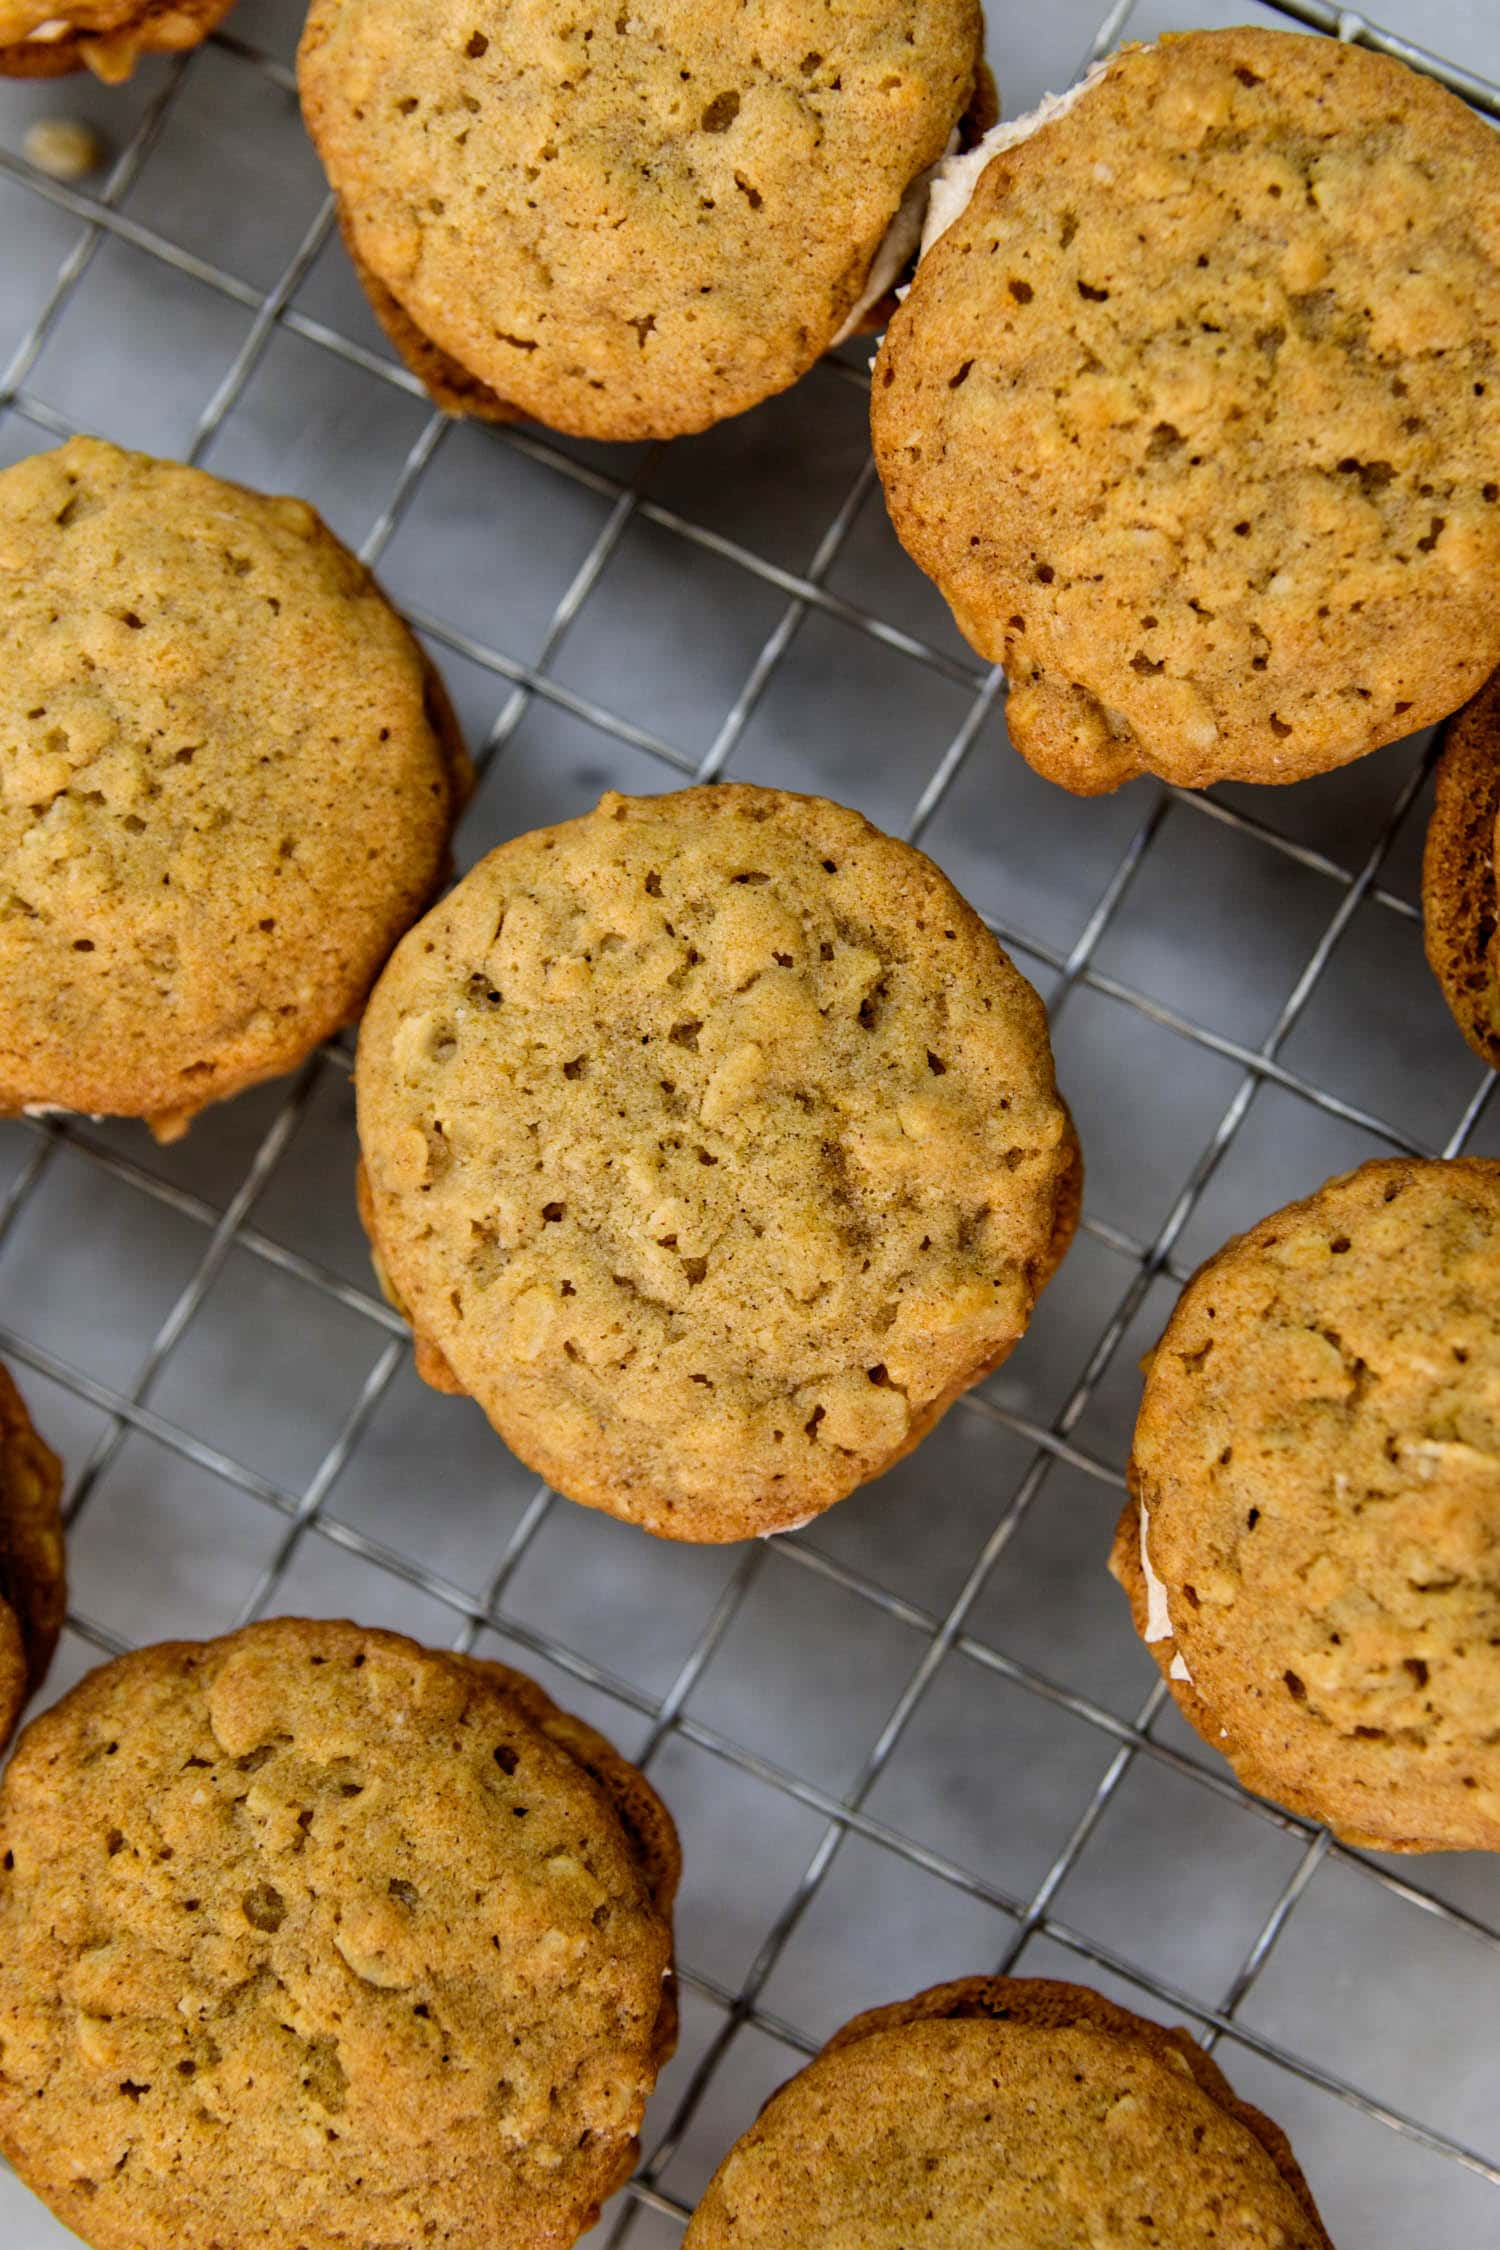 Top down view of oatmeal spice creme-filled cookies all on a wire cooling rack on a marble surface